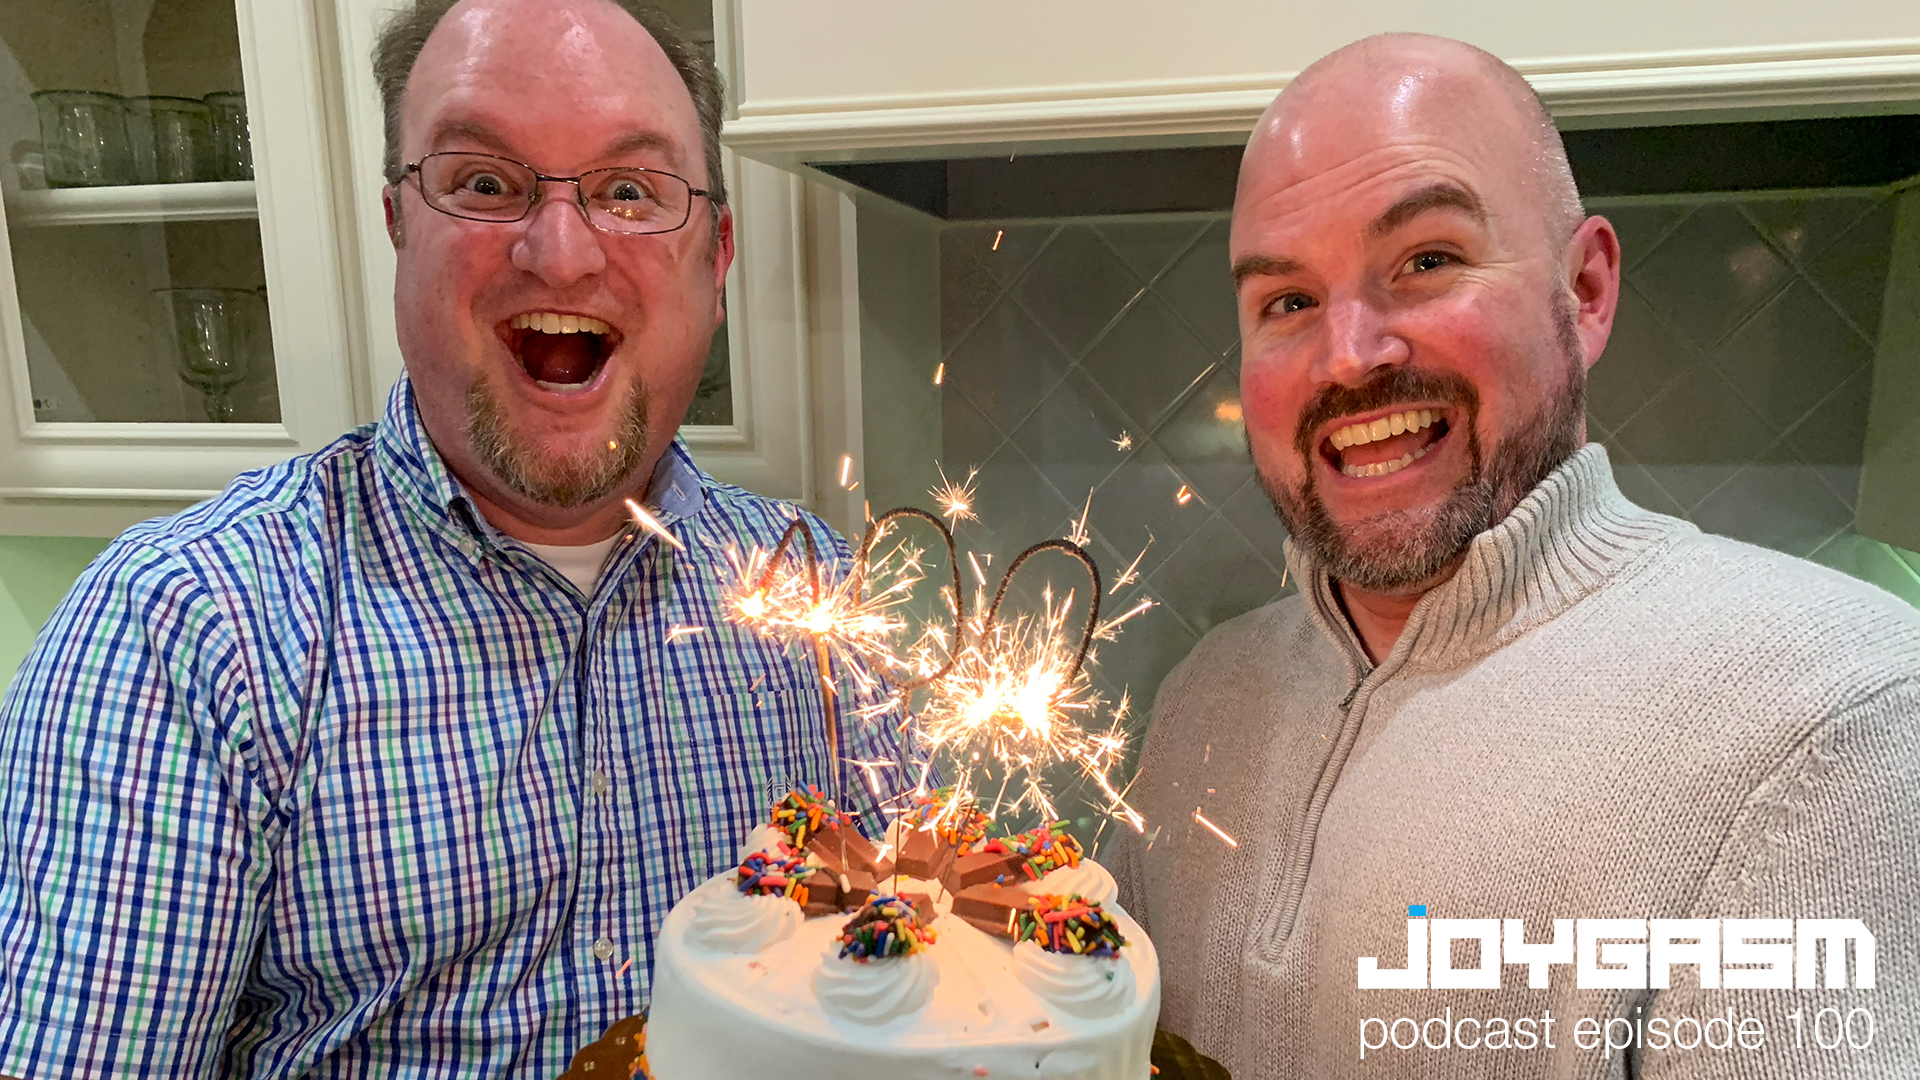 Ep. 100: Achievement Unlocked – Celebrating Our 100th Episode!